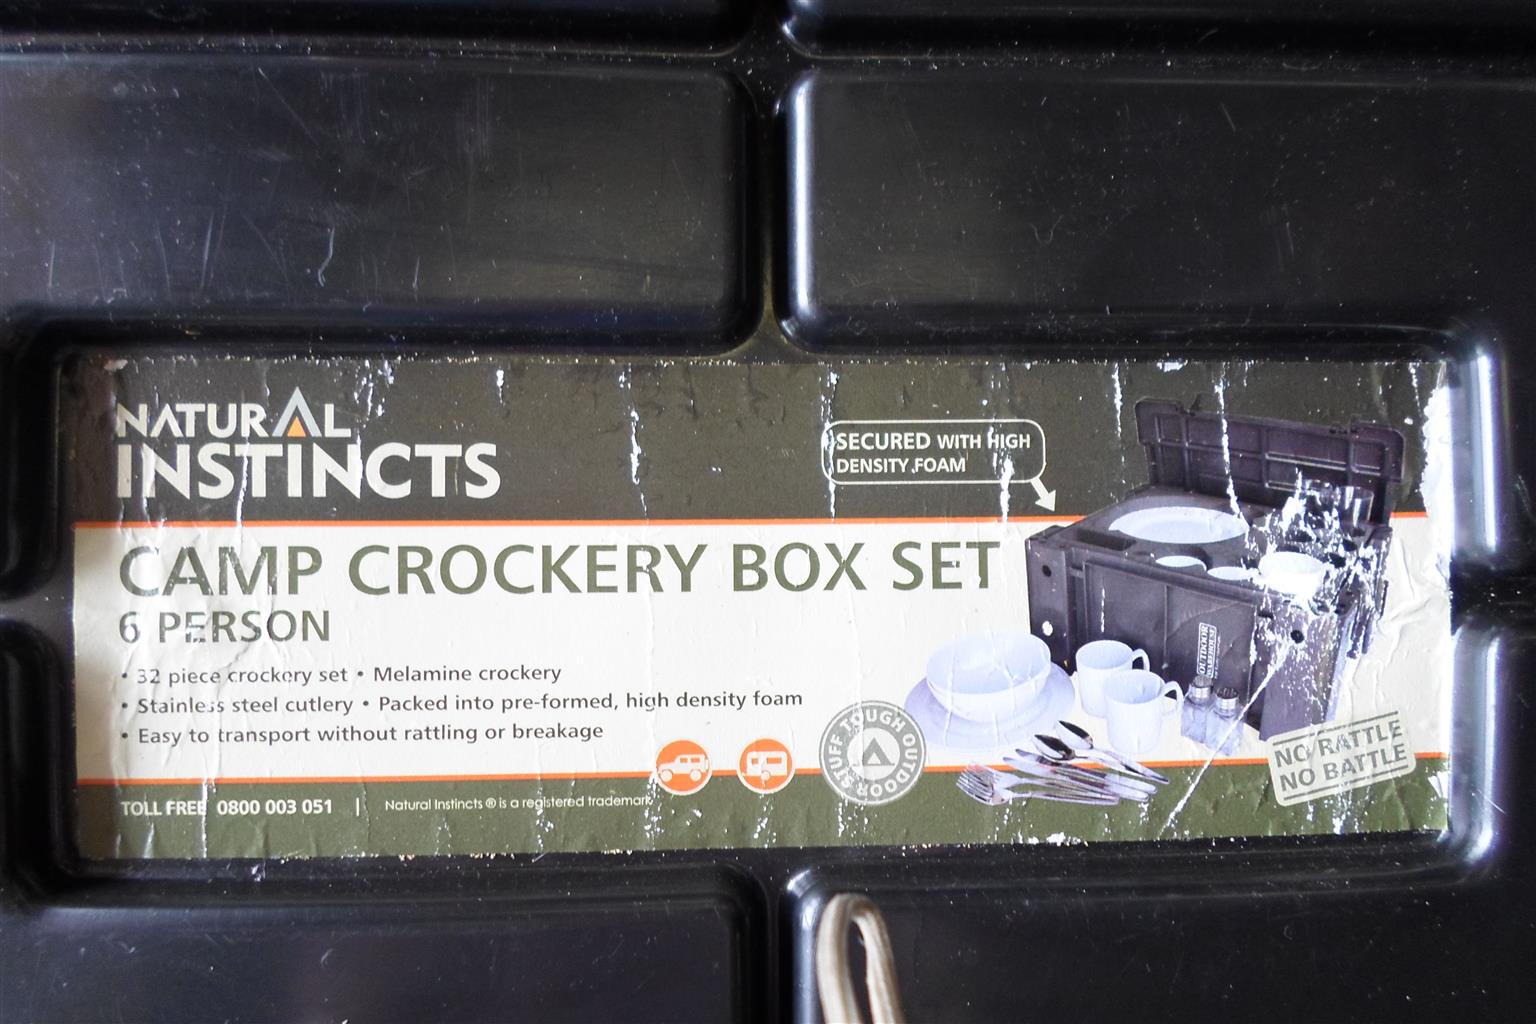 Natural Instincts Camp Crockery Box